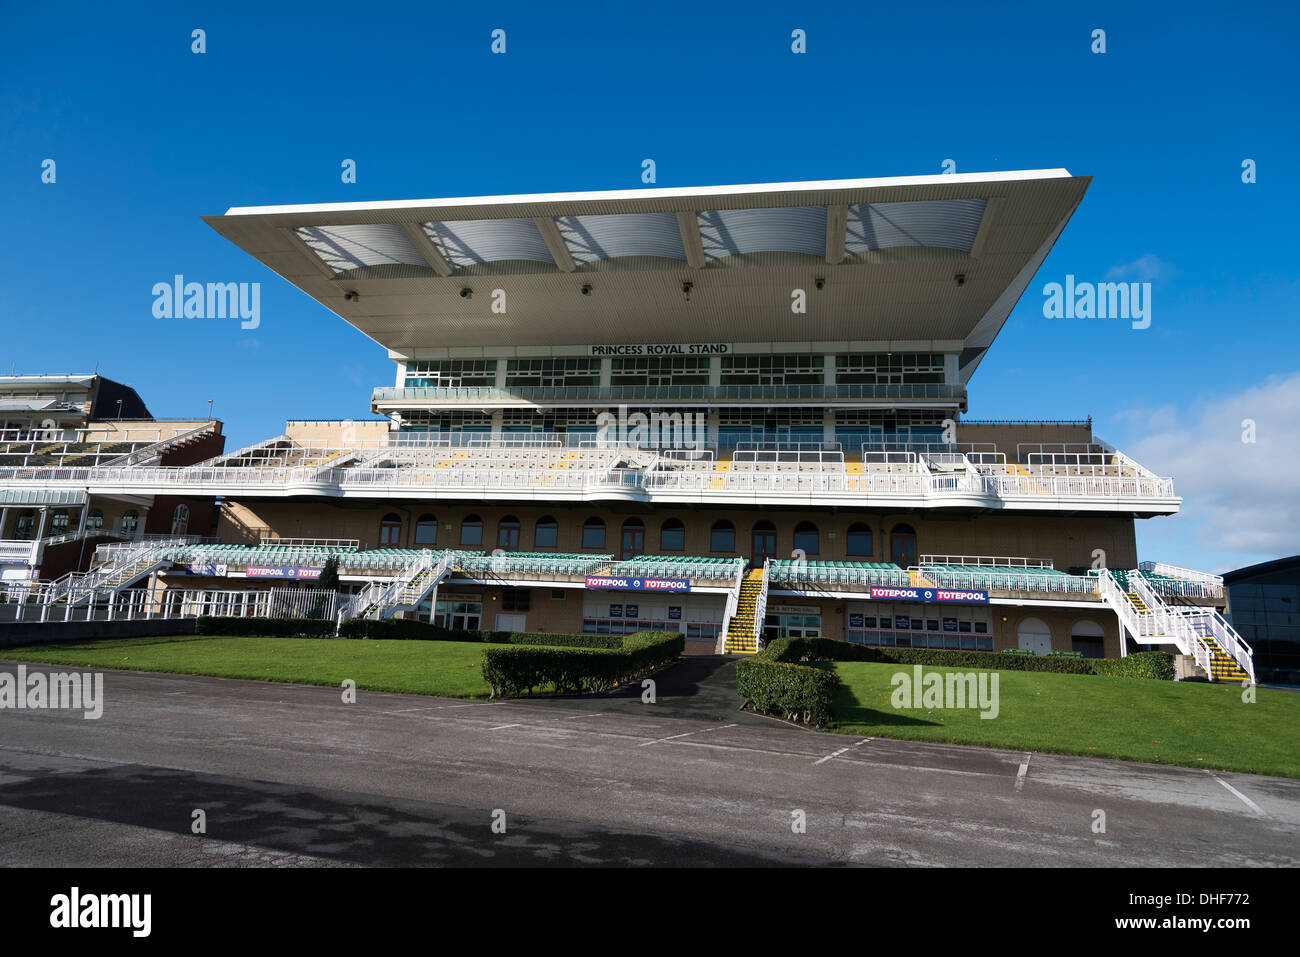 The Princess Royal stand at Aintree racecourse in Liverpool home of the Grand National Stock Photo